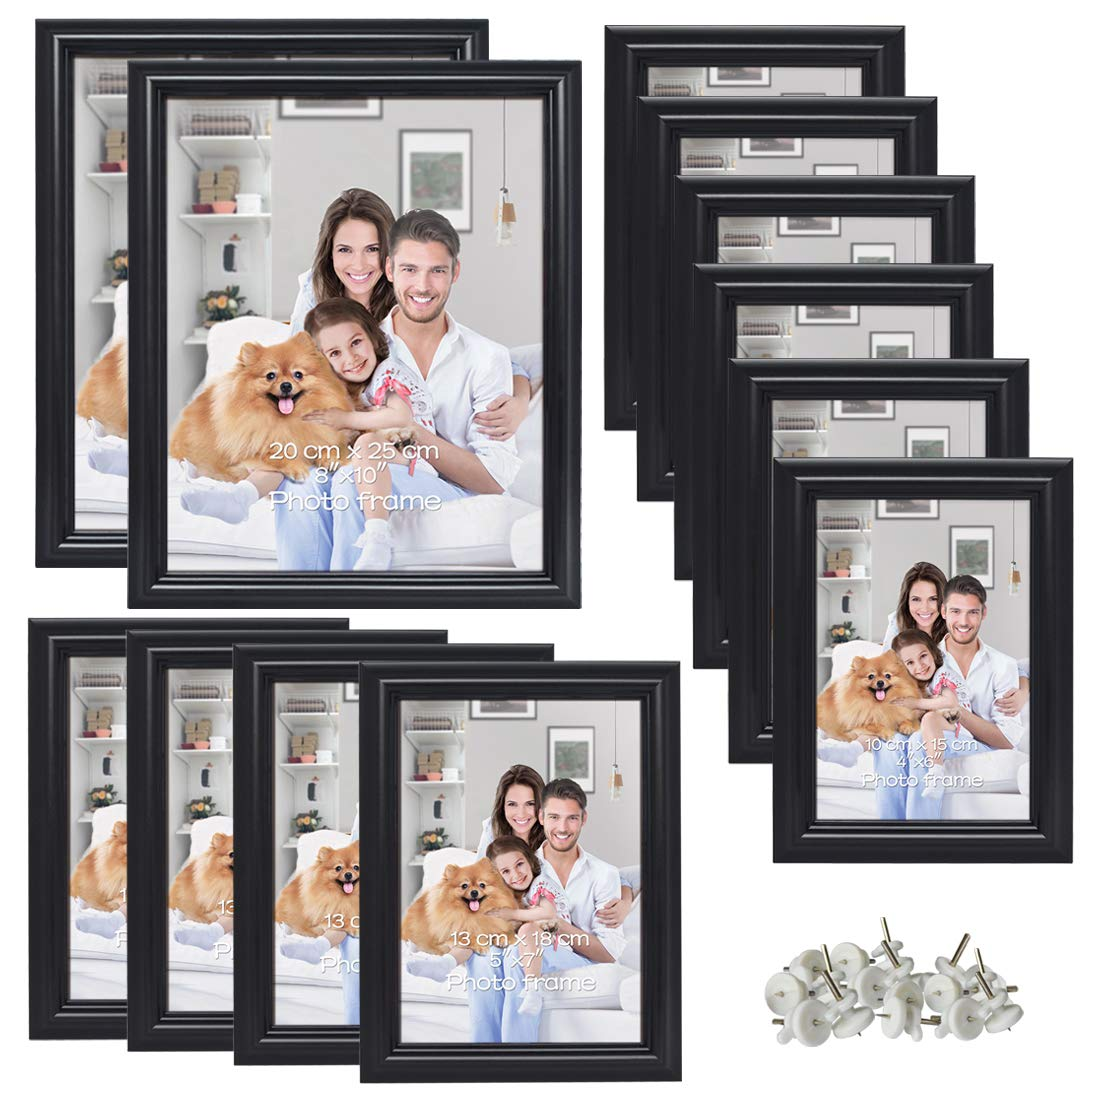 PETAFLOP Multiple Black Picture Frames Set of 12, Two 8x10 Picture Frame, Four Picture Frames 5x7, Six 4x6 Frame by PETAFLOP